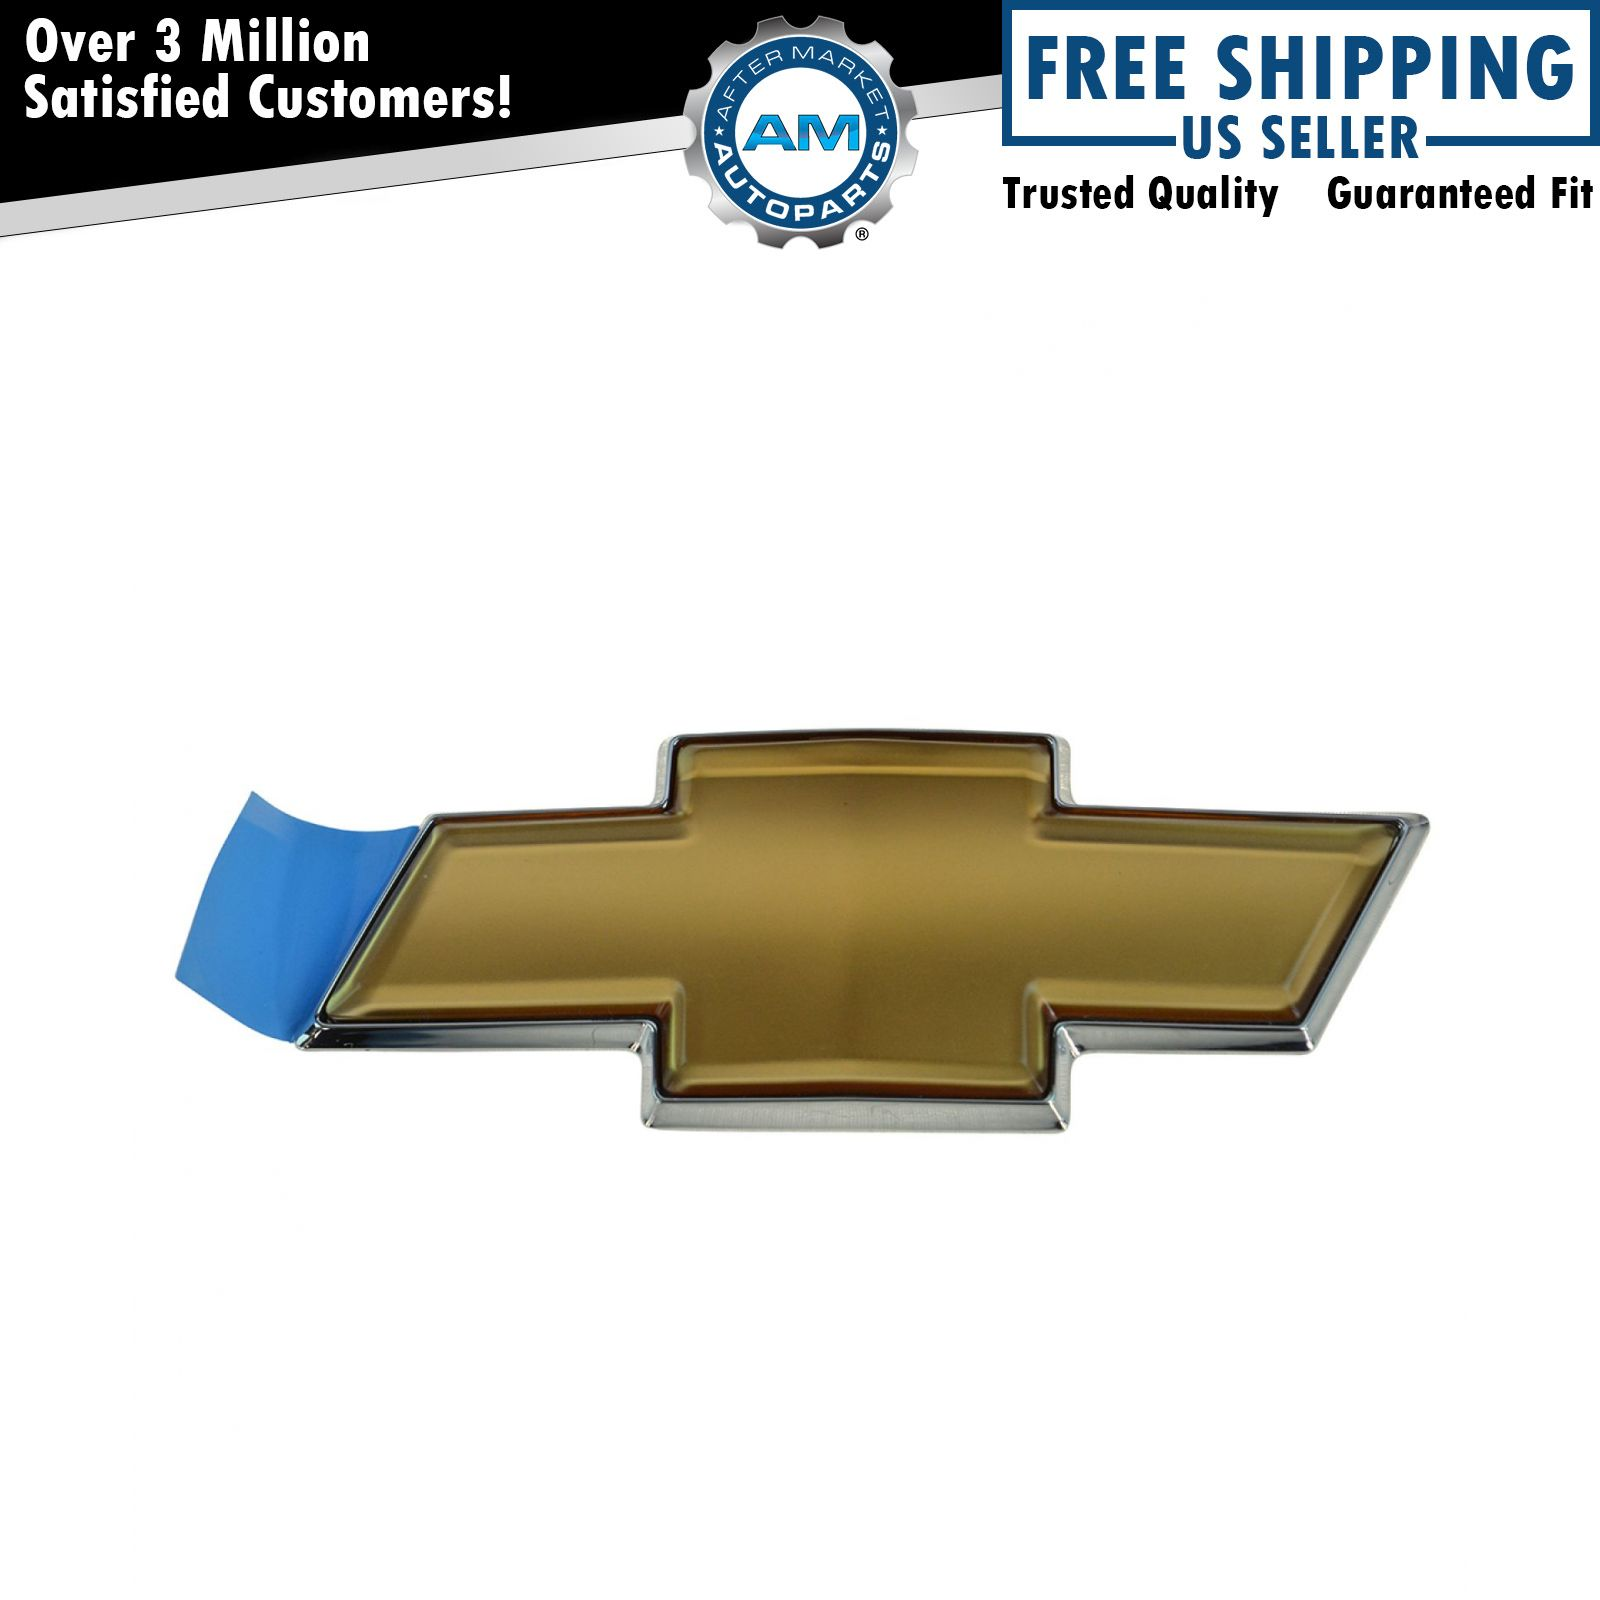 Oem grille mounted gold bowtie adhesive emblem for chevy impala oem grille mounted gold bowtie adhesive emblem for chevy impala monte carlo buycottarizona Image collections